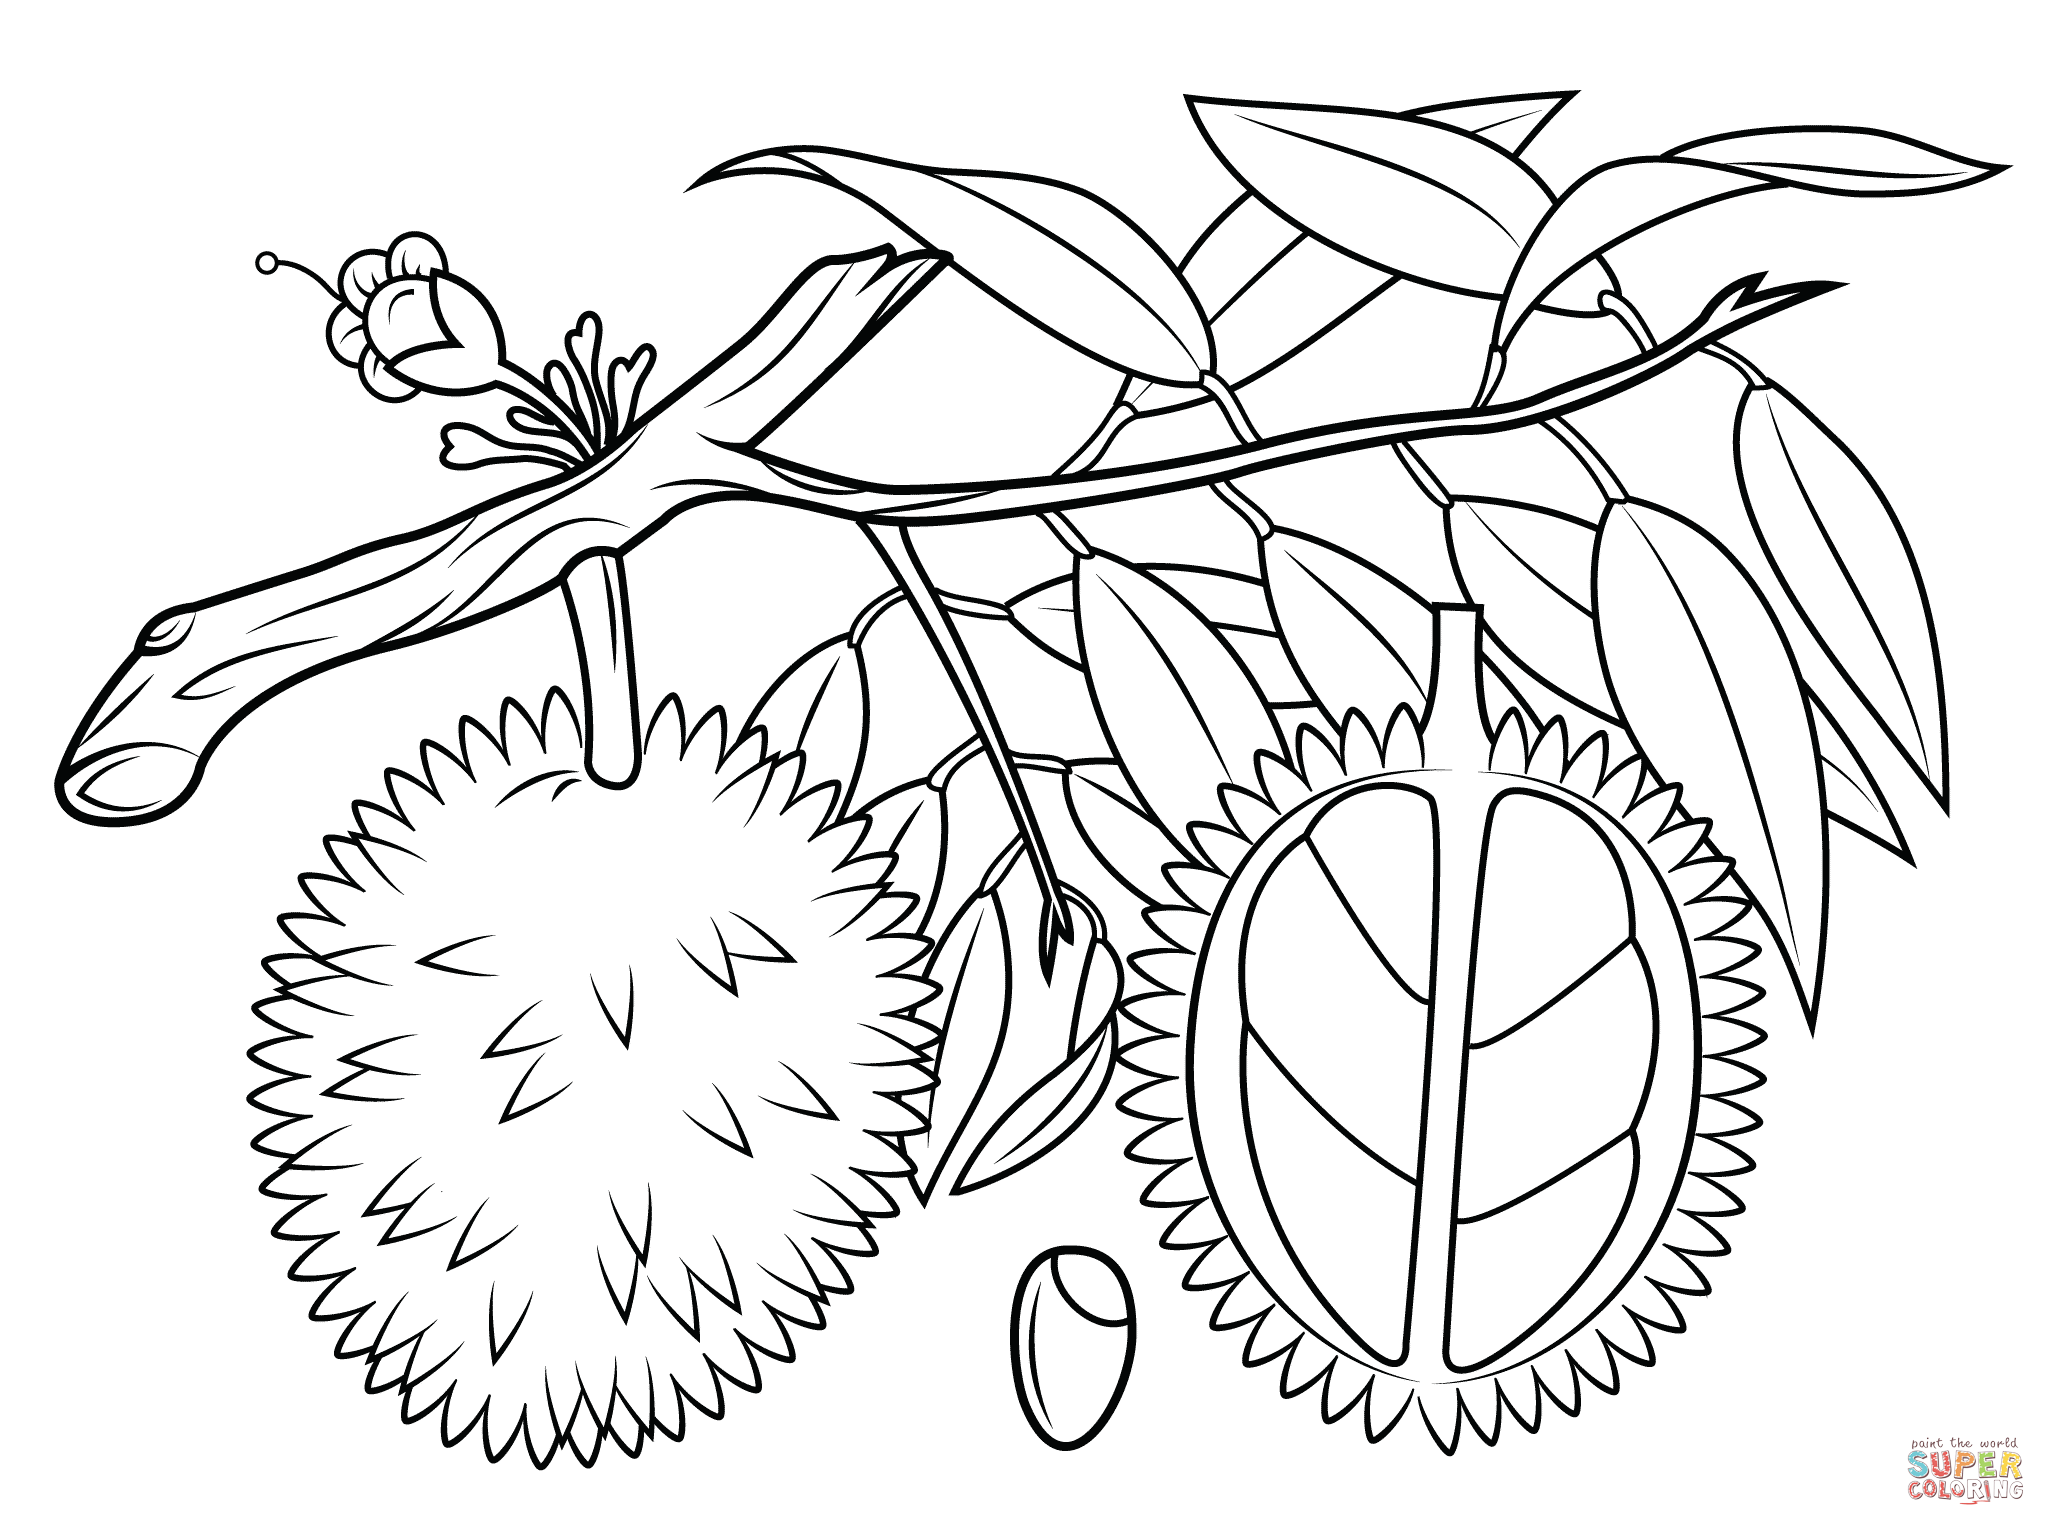 durian branch coloring pagepng 20461526